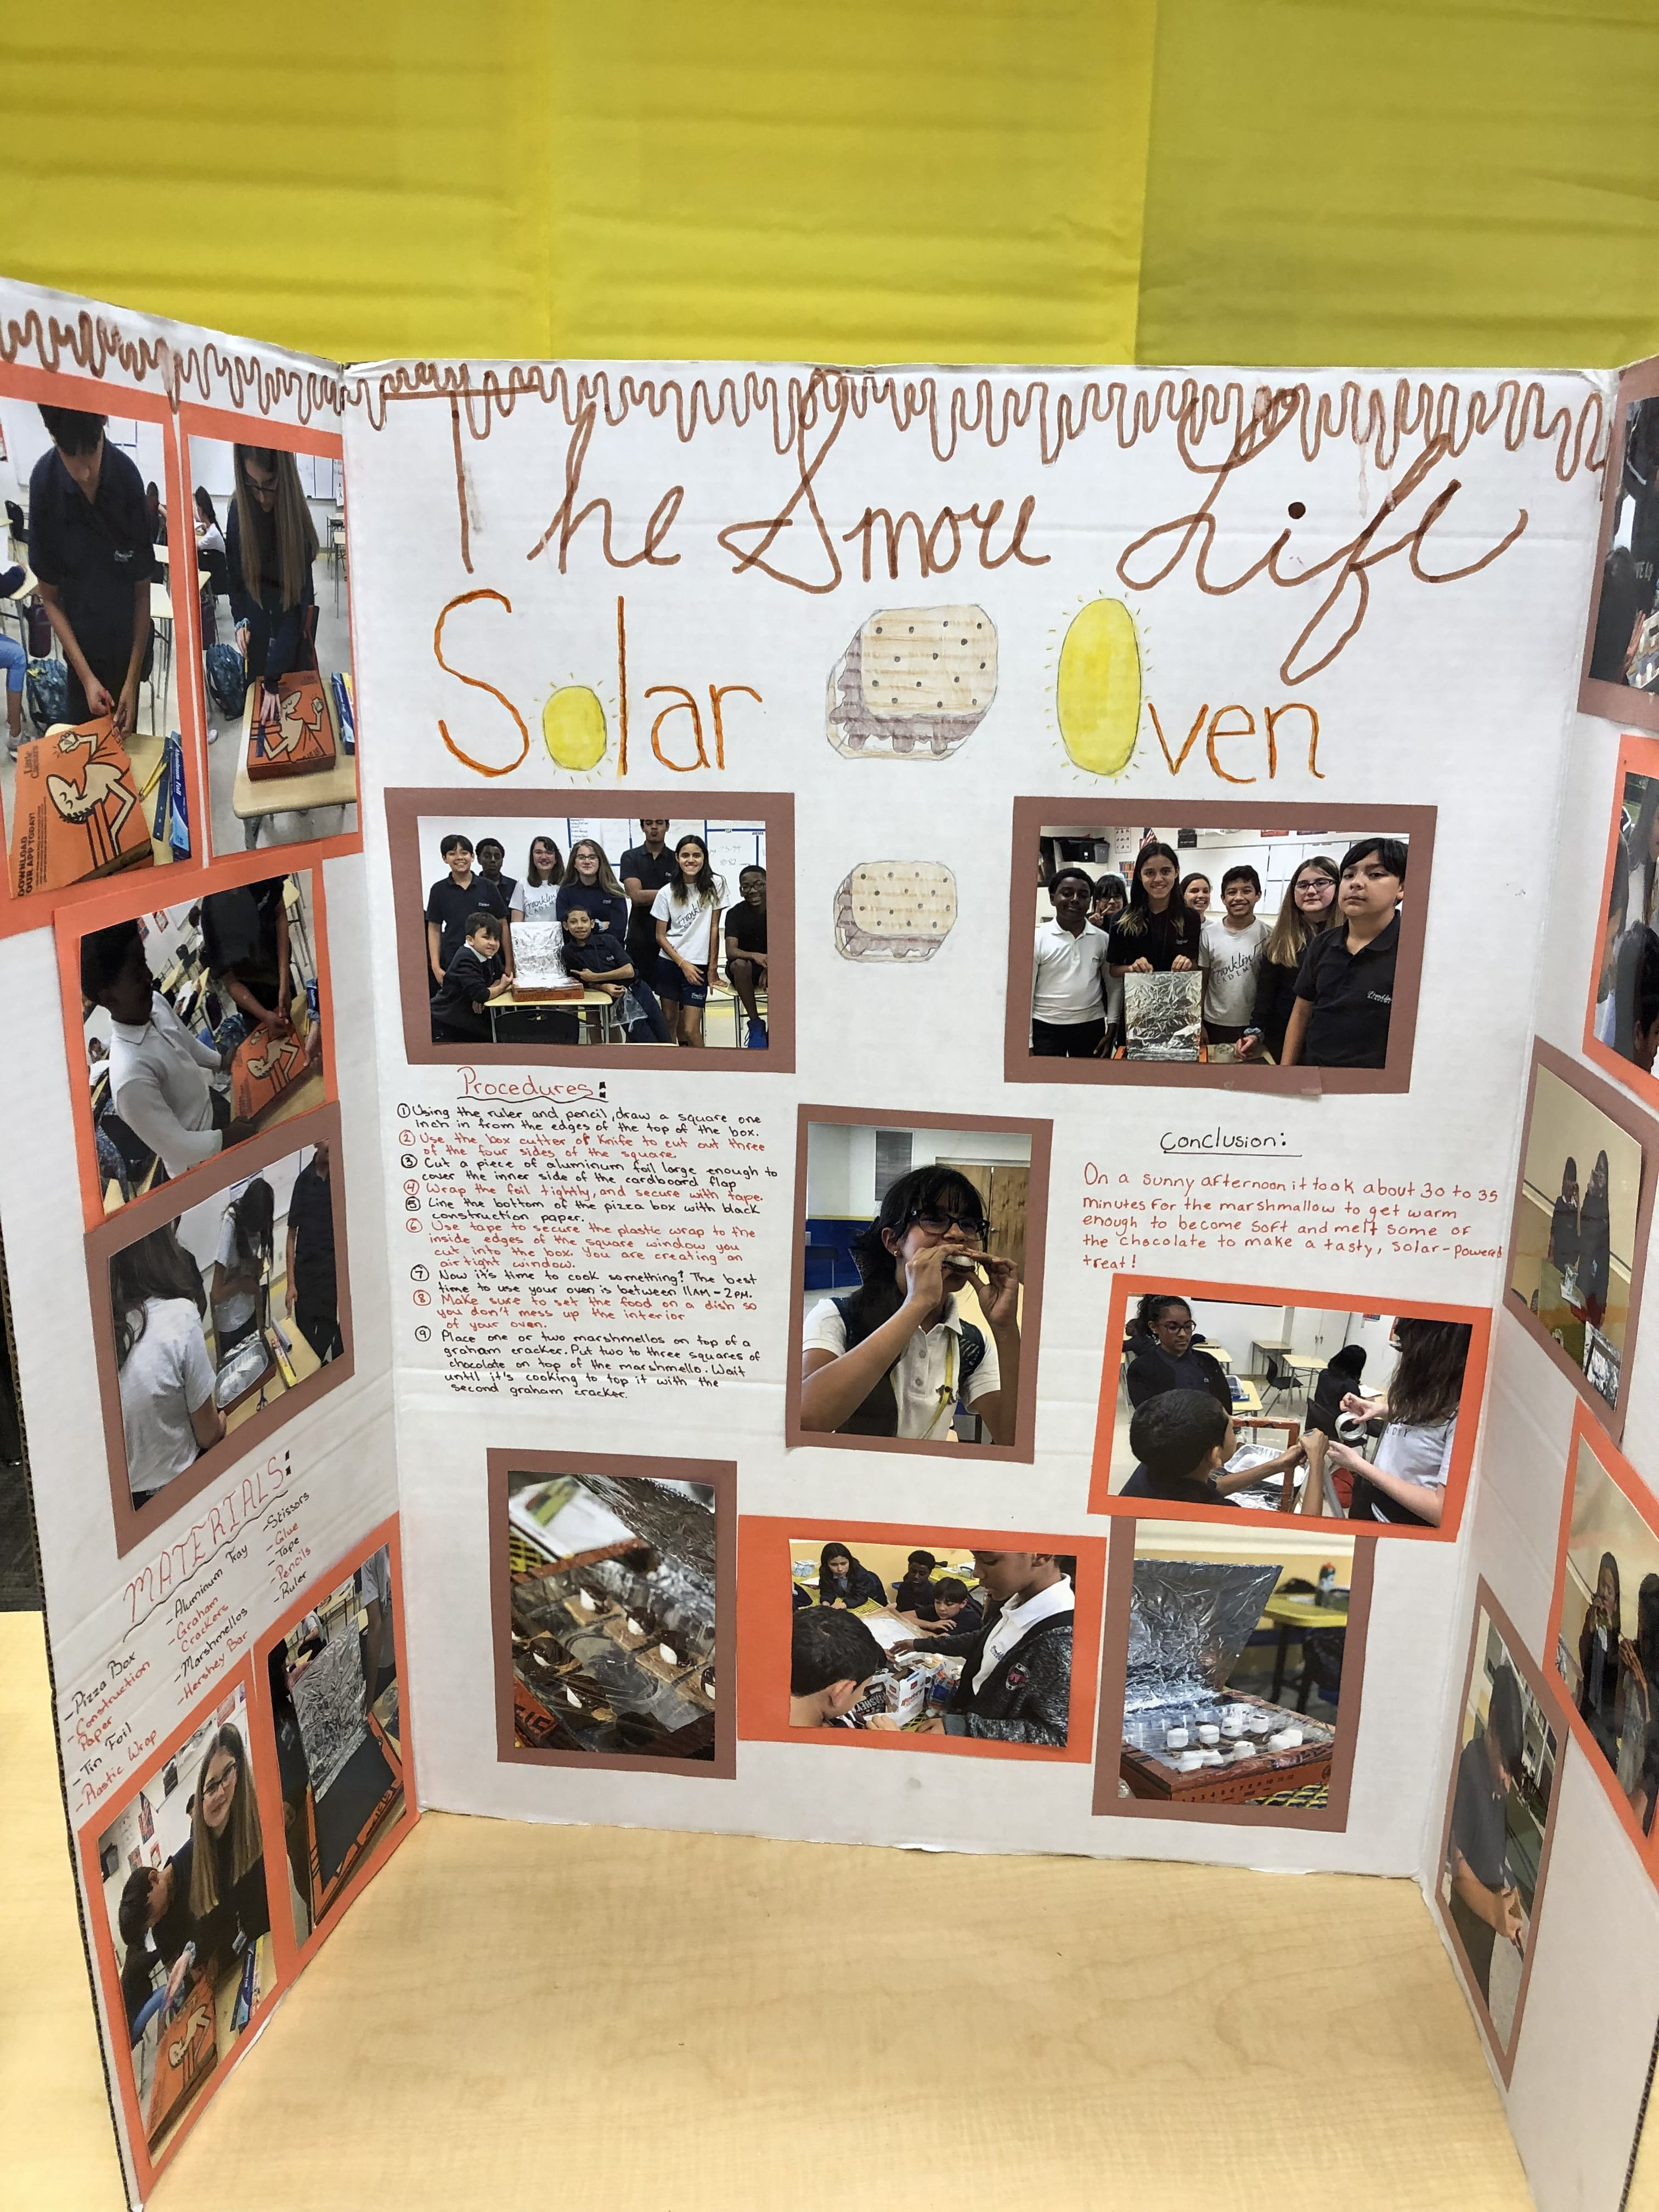 Sweet and Science Fair Image number 10